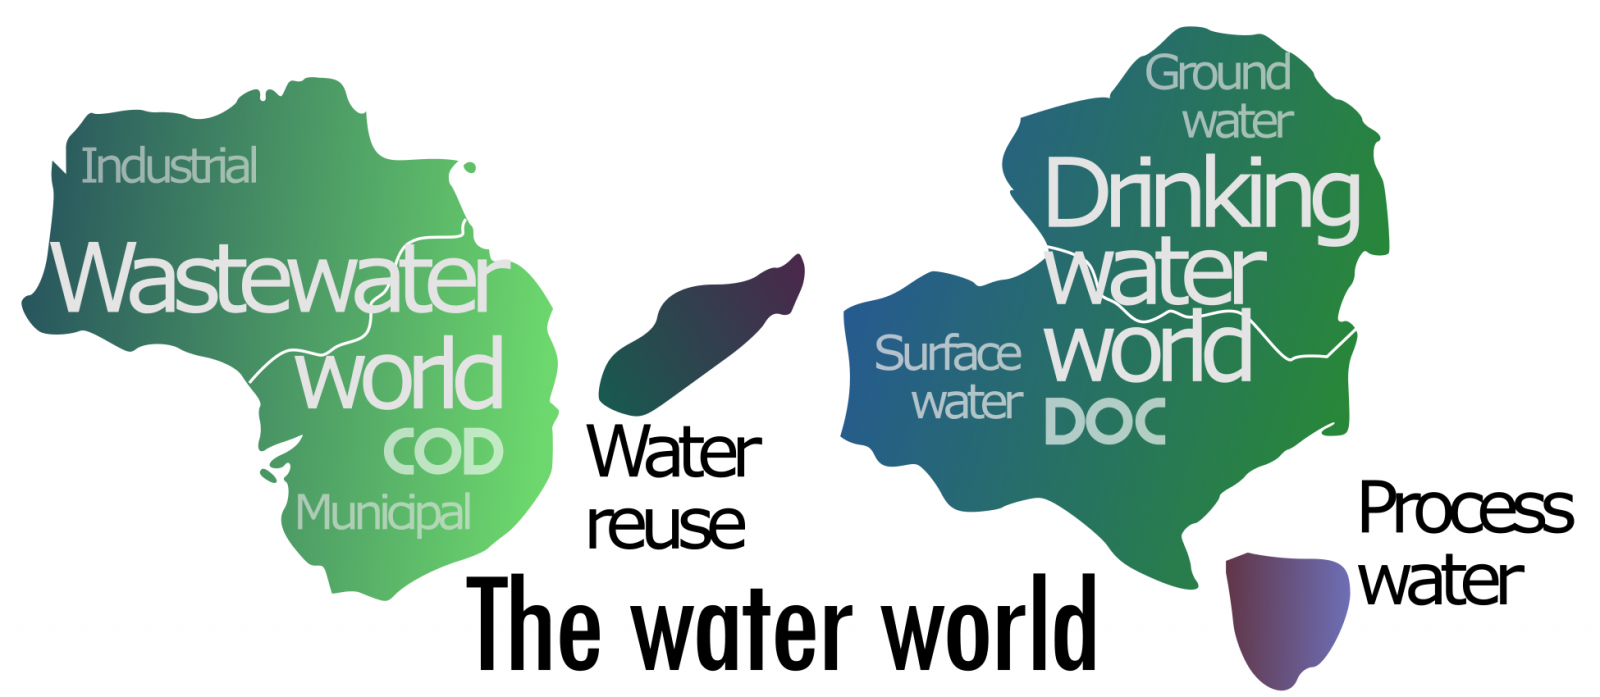 World map showing drinking water, process water, water reuse and wastewater